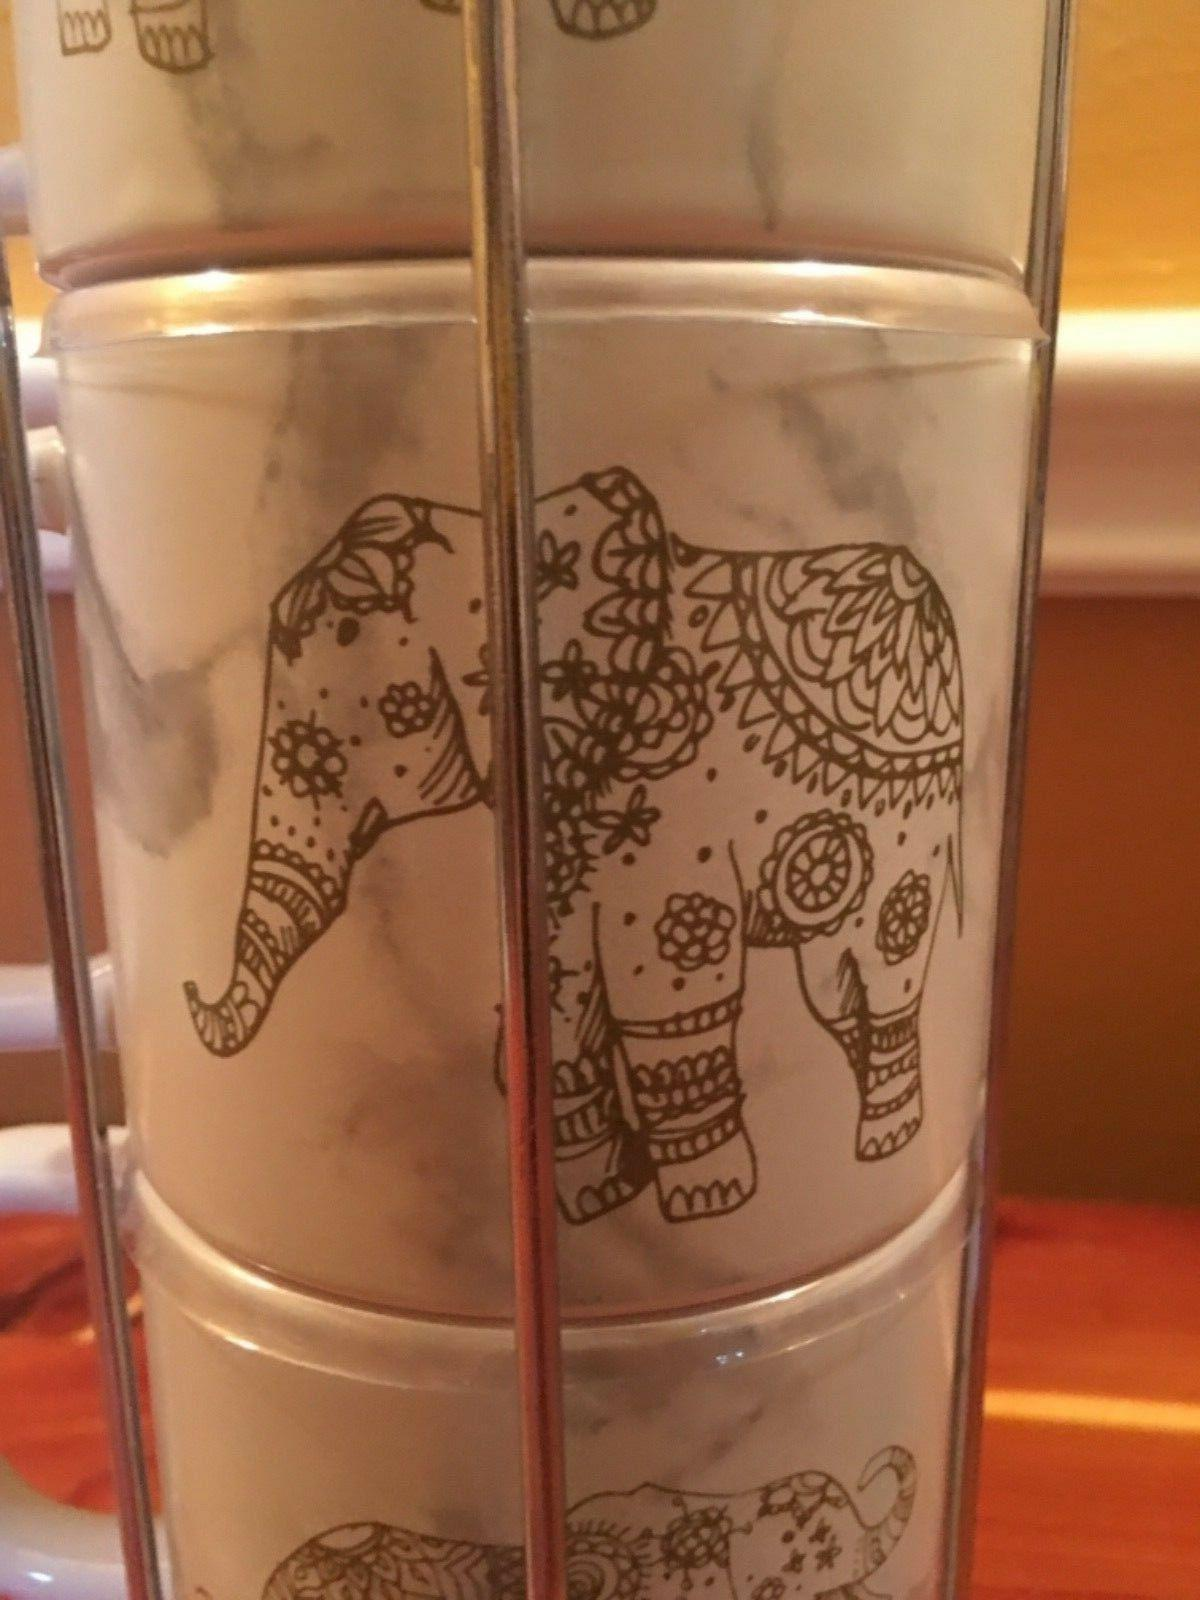 4 14oz. Elephant Porcelain Cups Stainless Steel